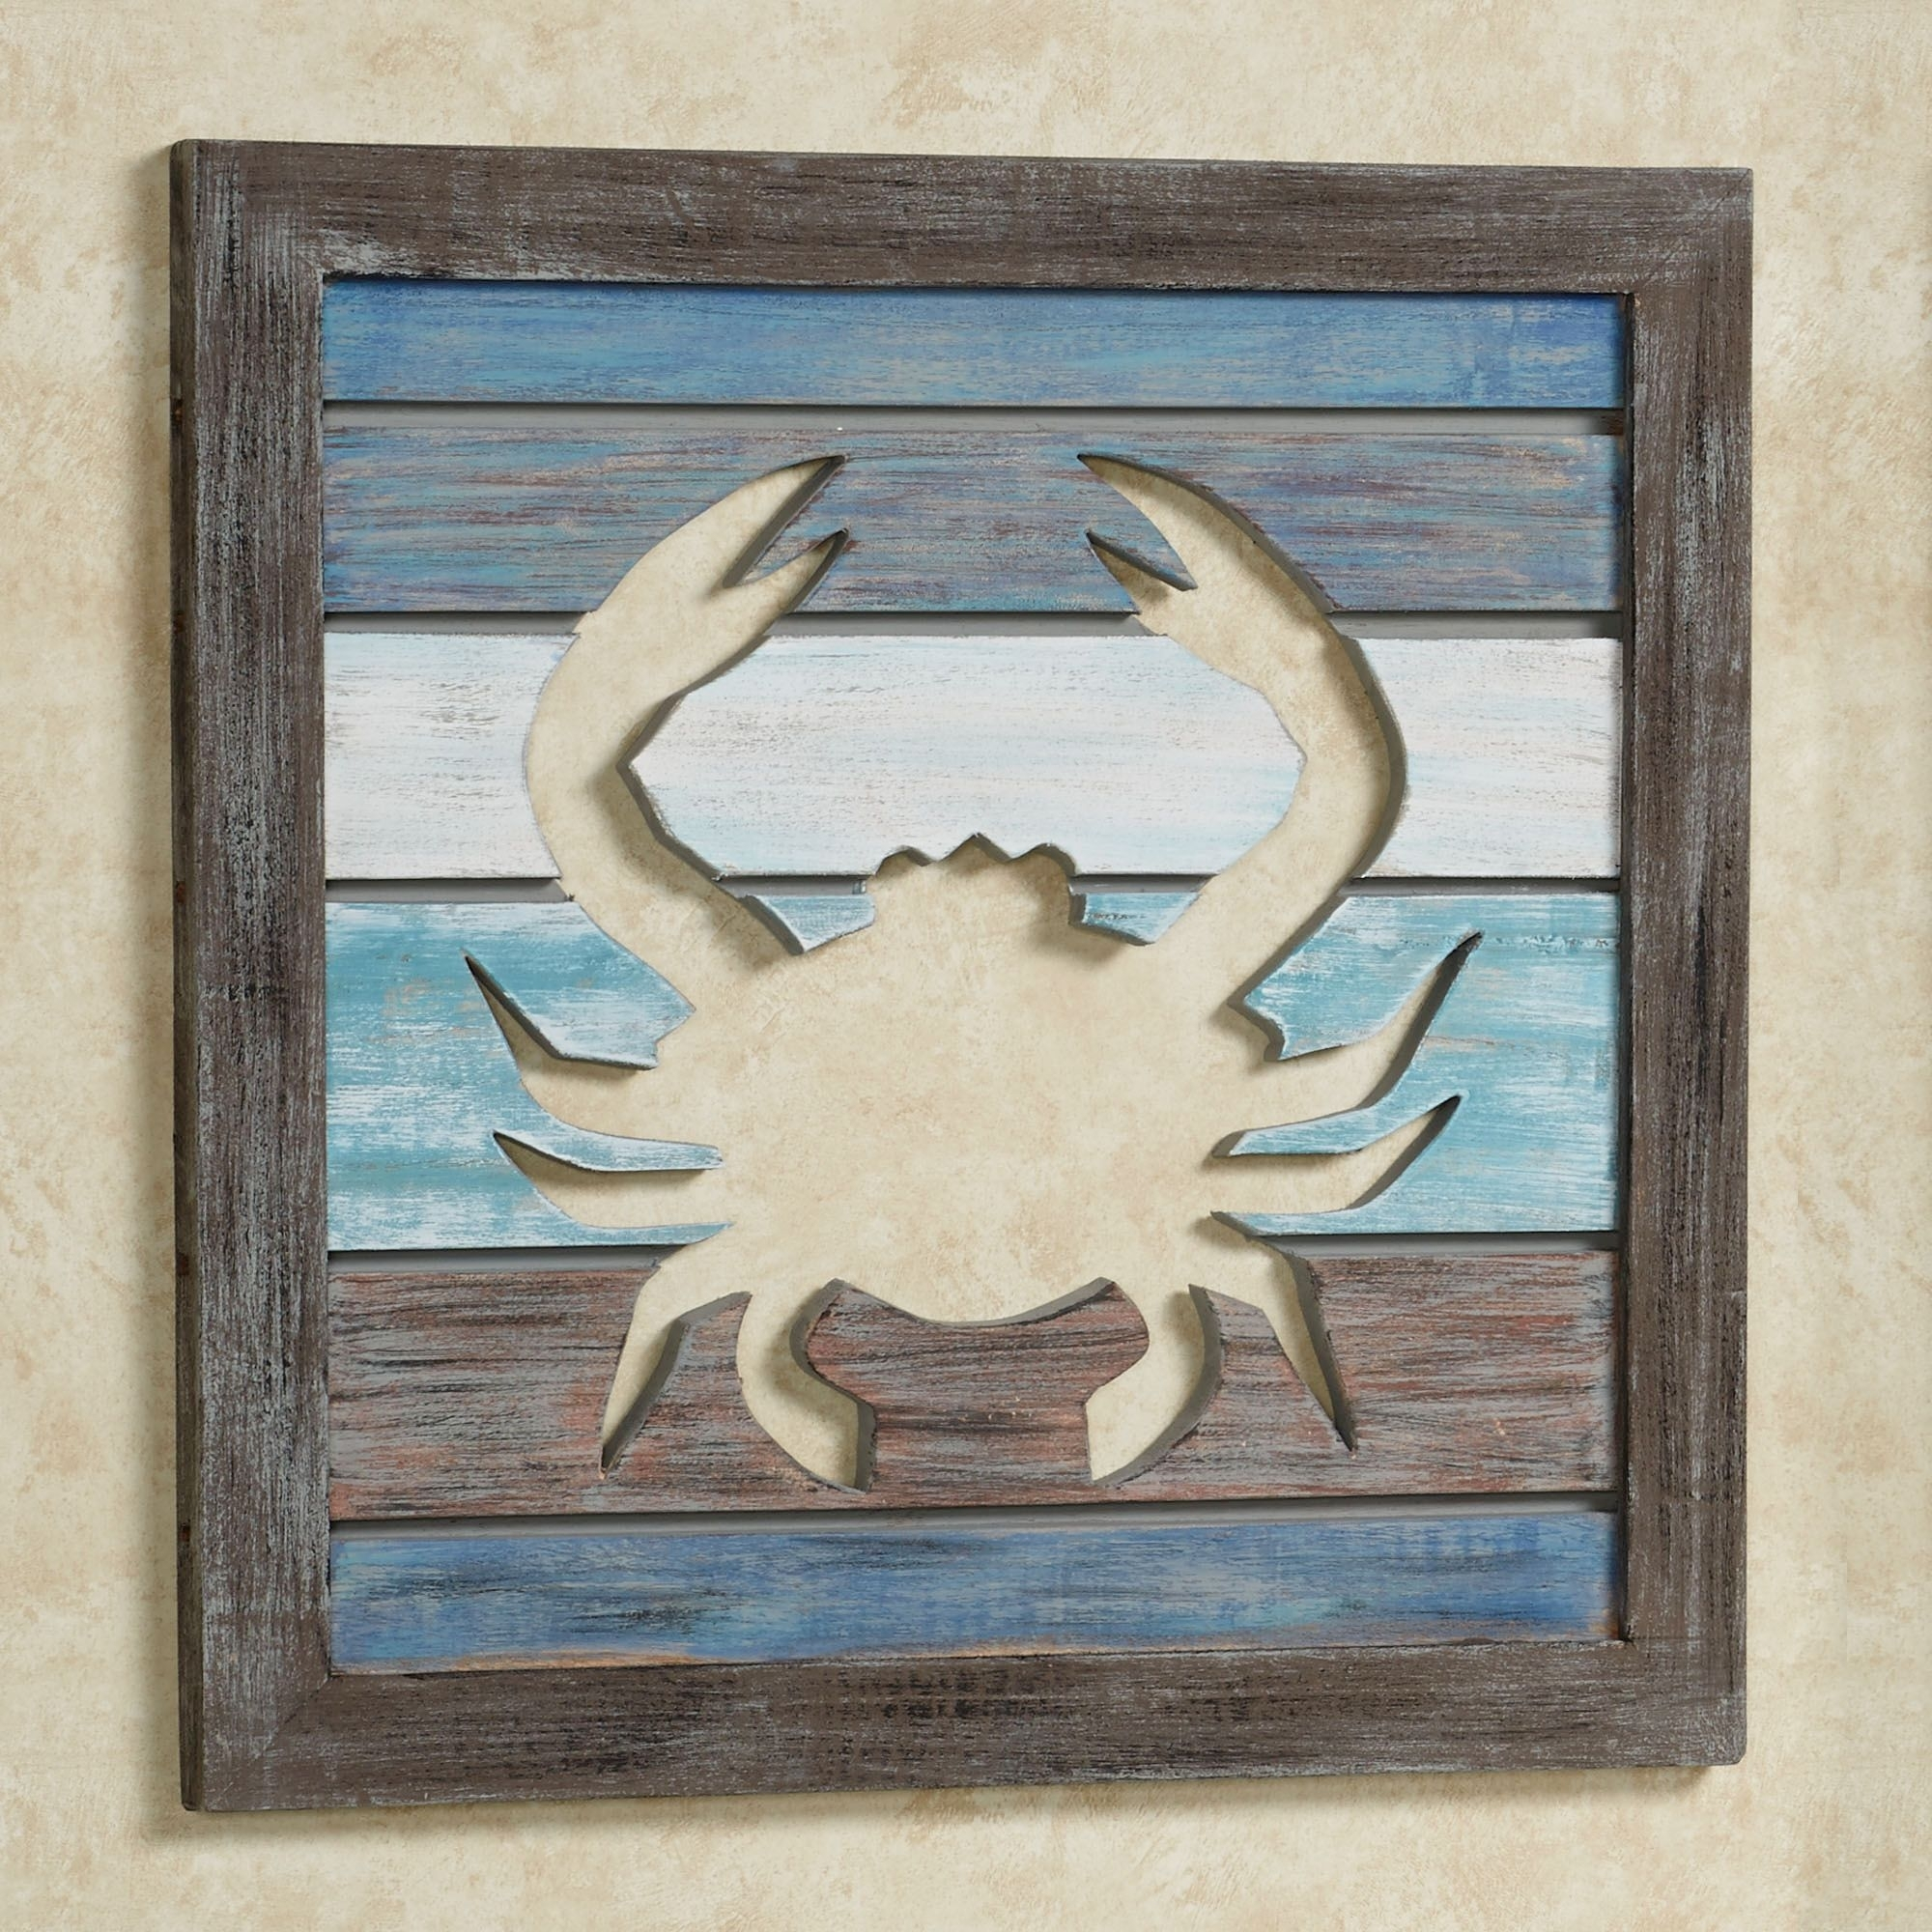 Sealife Cutout Slat Indoor Outdoor Coastal Wall Art Regarding Best And Newest Sea Life Wall Art (View 11 of 15)